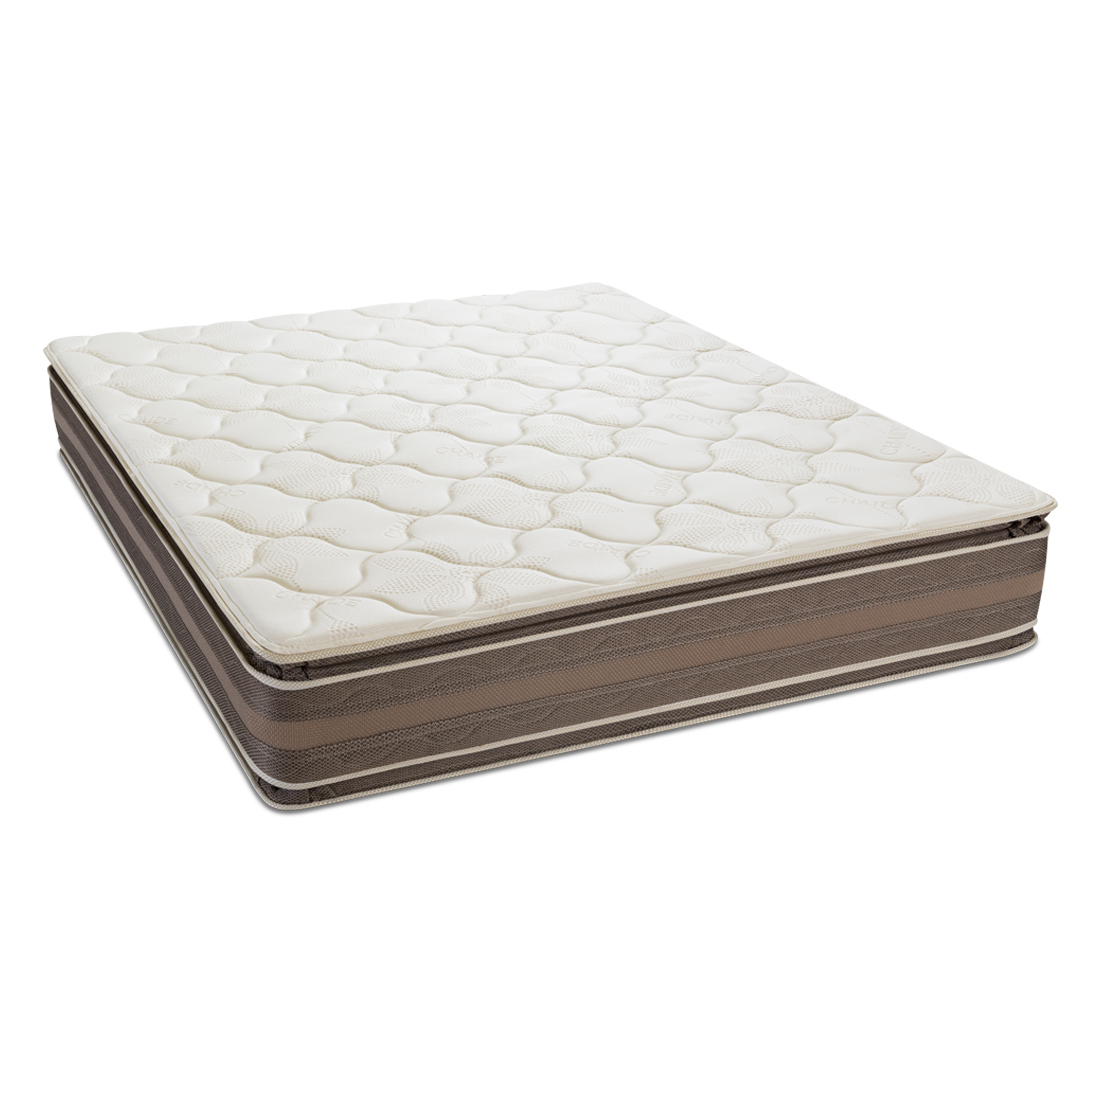 Colchón CHAIDE Continental De Lujo Pillow Top 2 y Media Plazas Beige